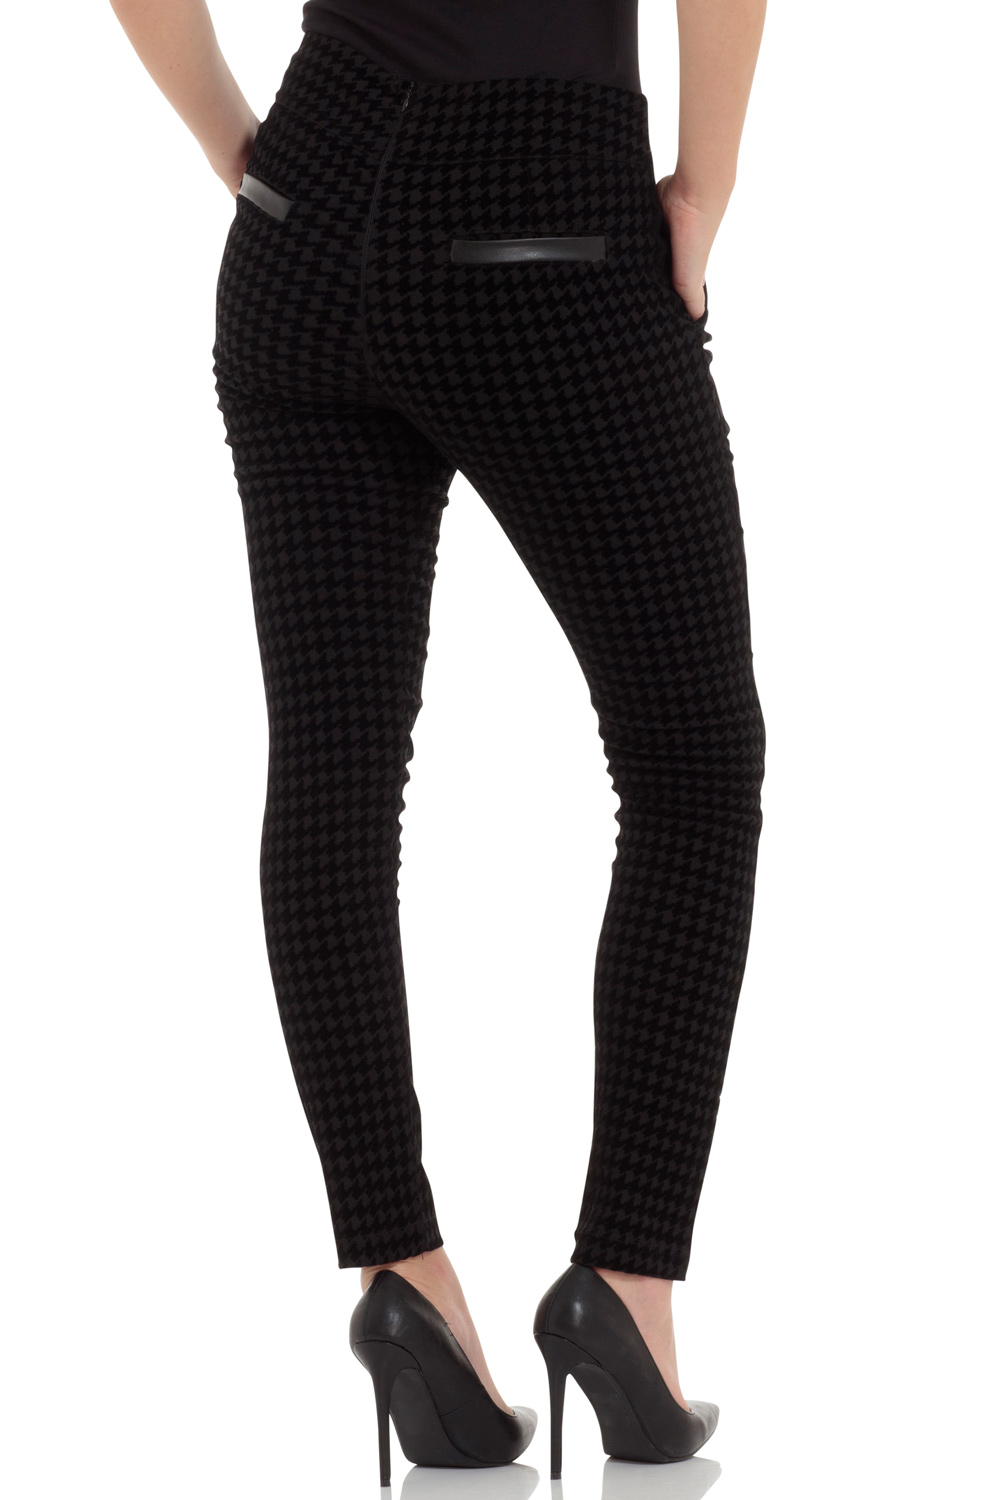 Peggy Black Cigarette Trousers